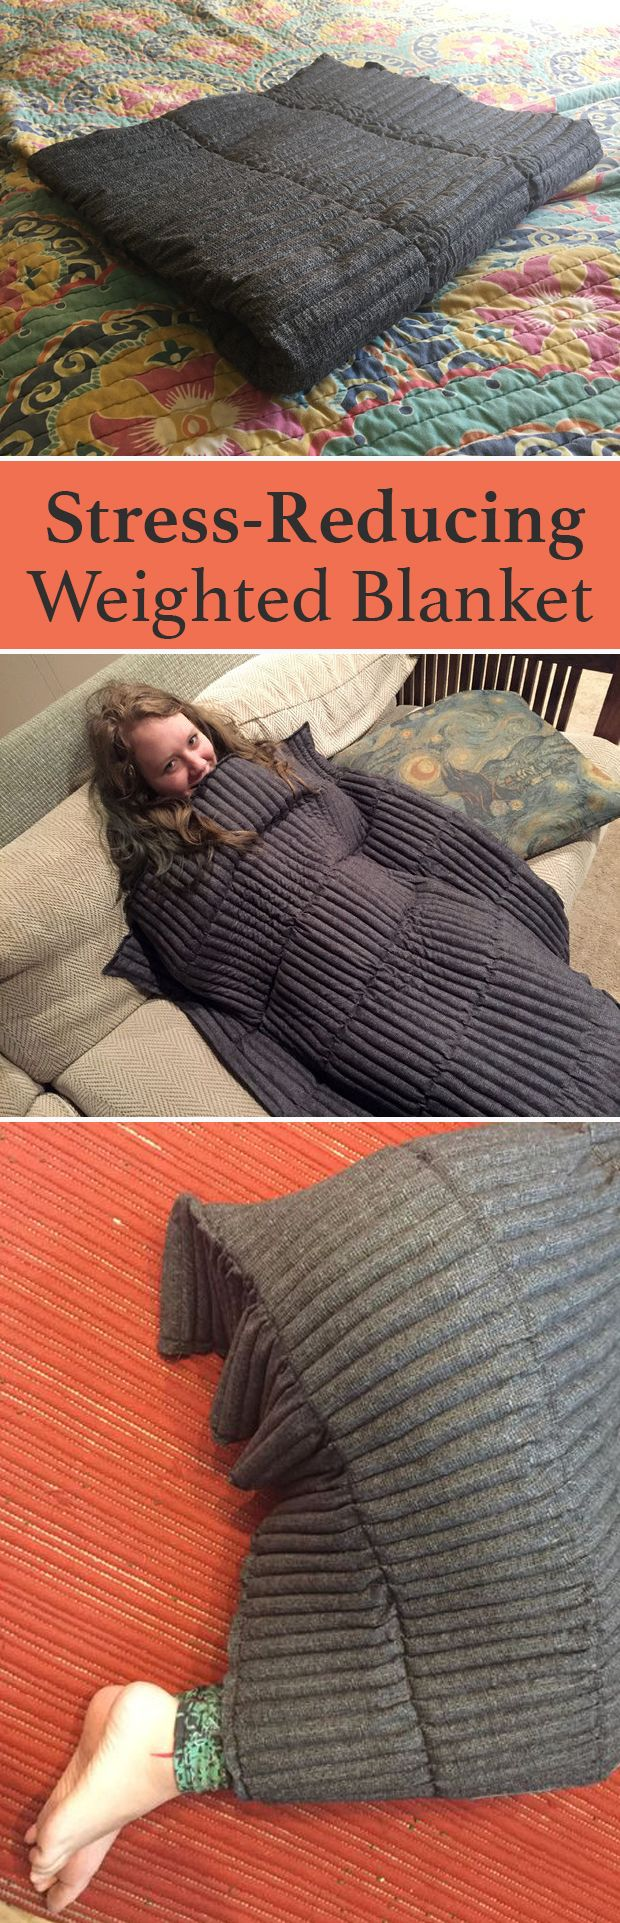 Weighted blankets have long been used therapeutically for people with sensory se...